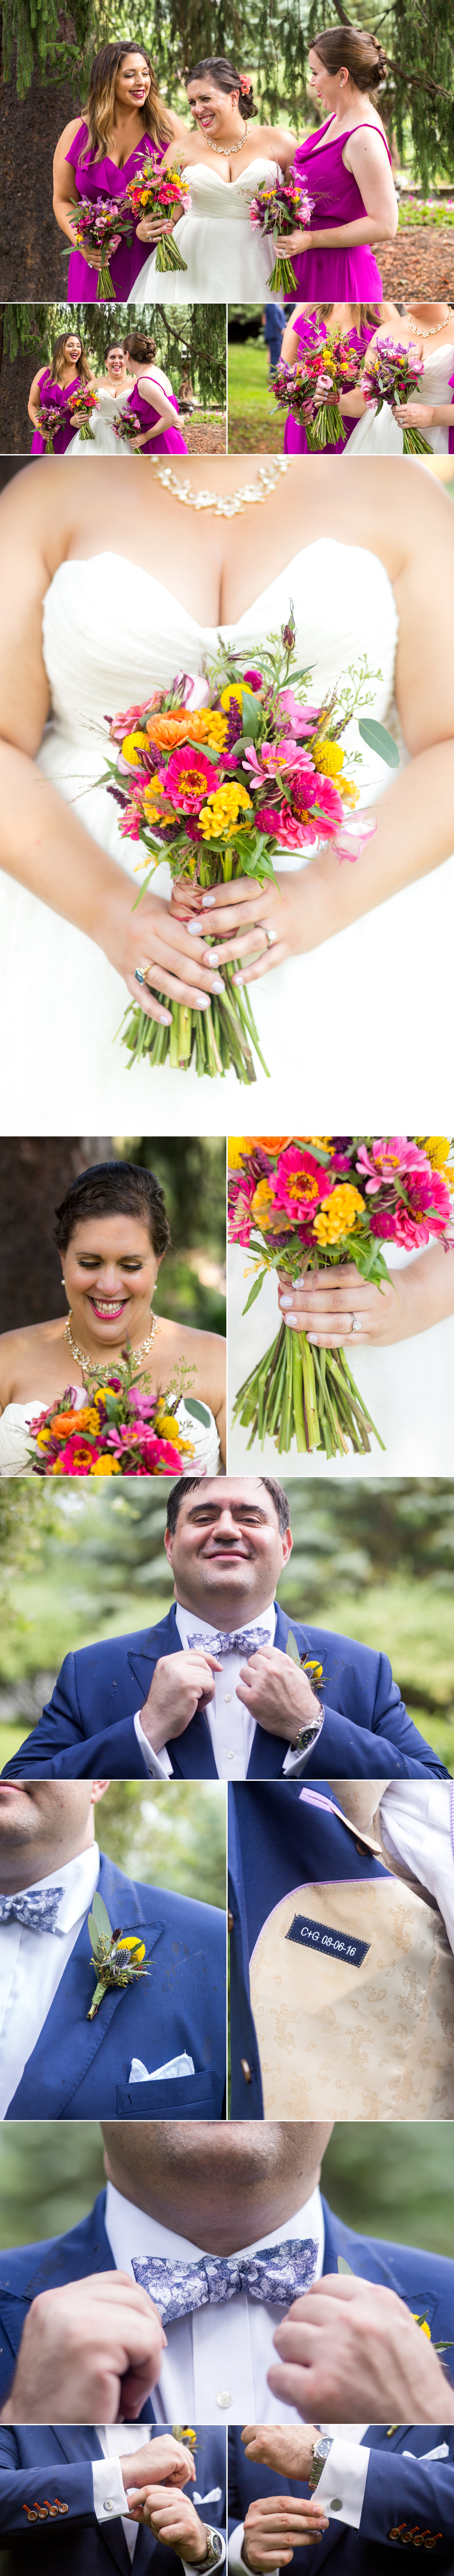 Hudson Valley, NY Wedding at Feast Caterers at Round Hill | Christina + George | Shaina Lee Photography | CT, NYC + Destination Wedding + Engagement Photographer